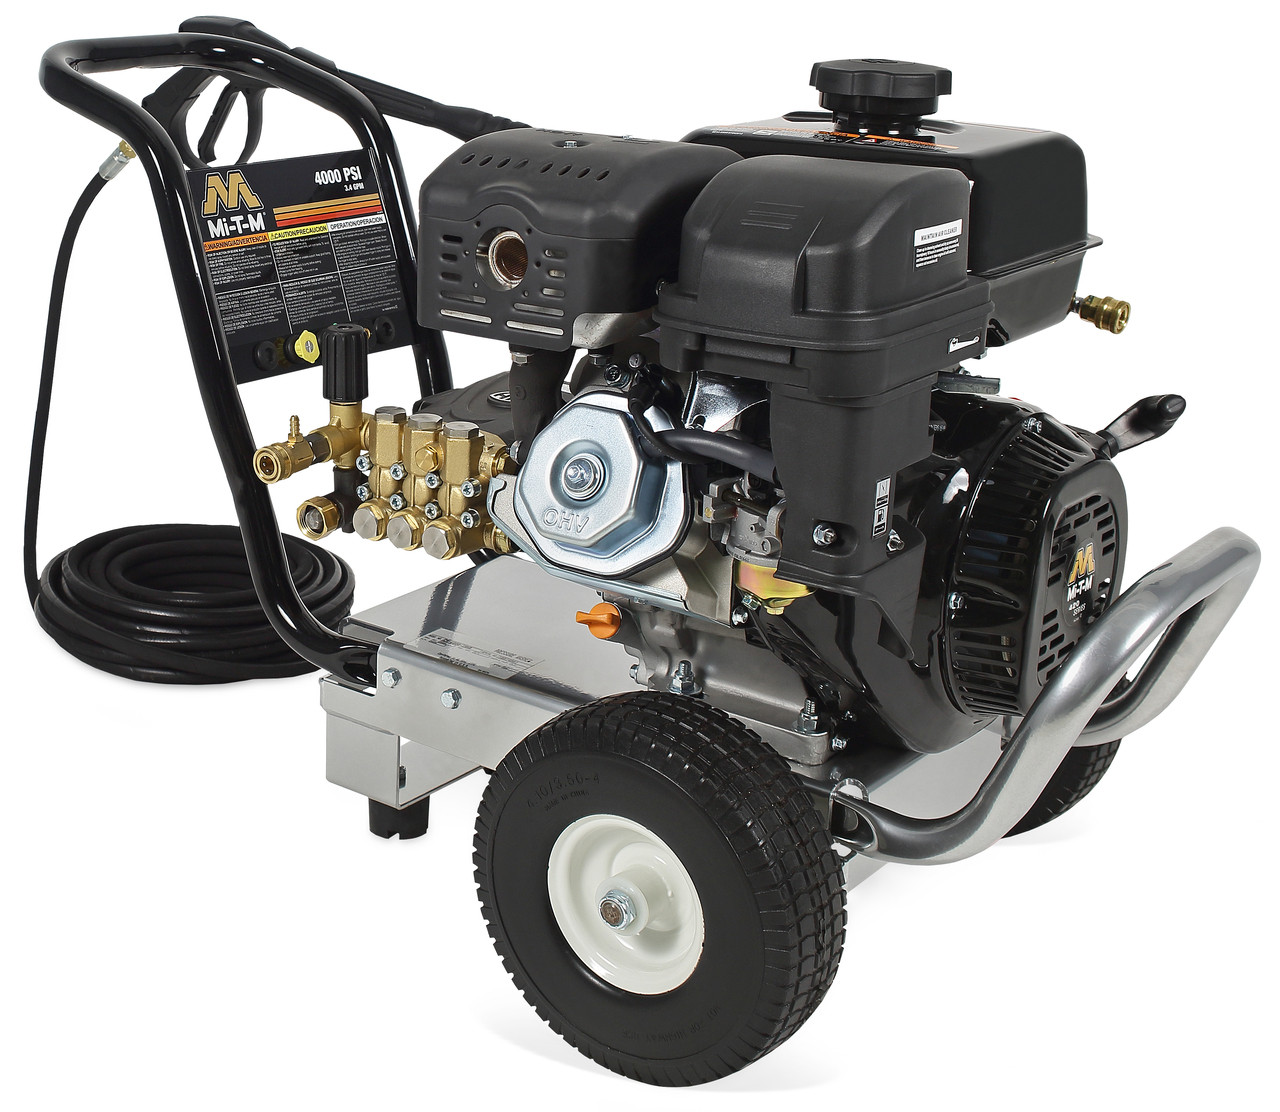 small resolution of mi t m choremaster pressure washer cm 4000 1mmb 4000 psi 3 4 gpm mi t m wiring diagram